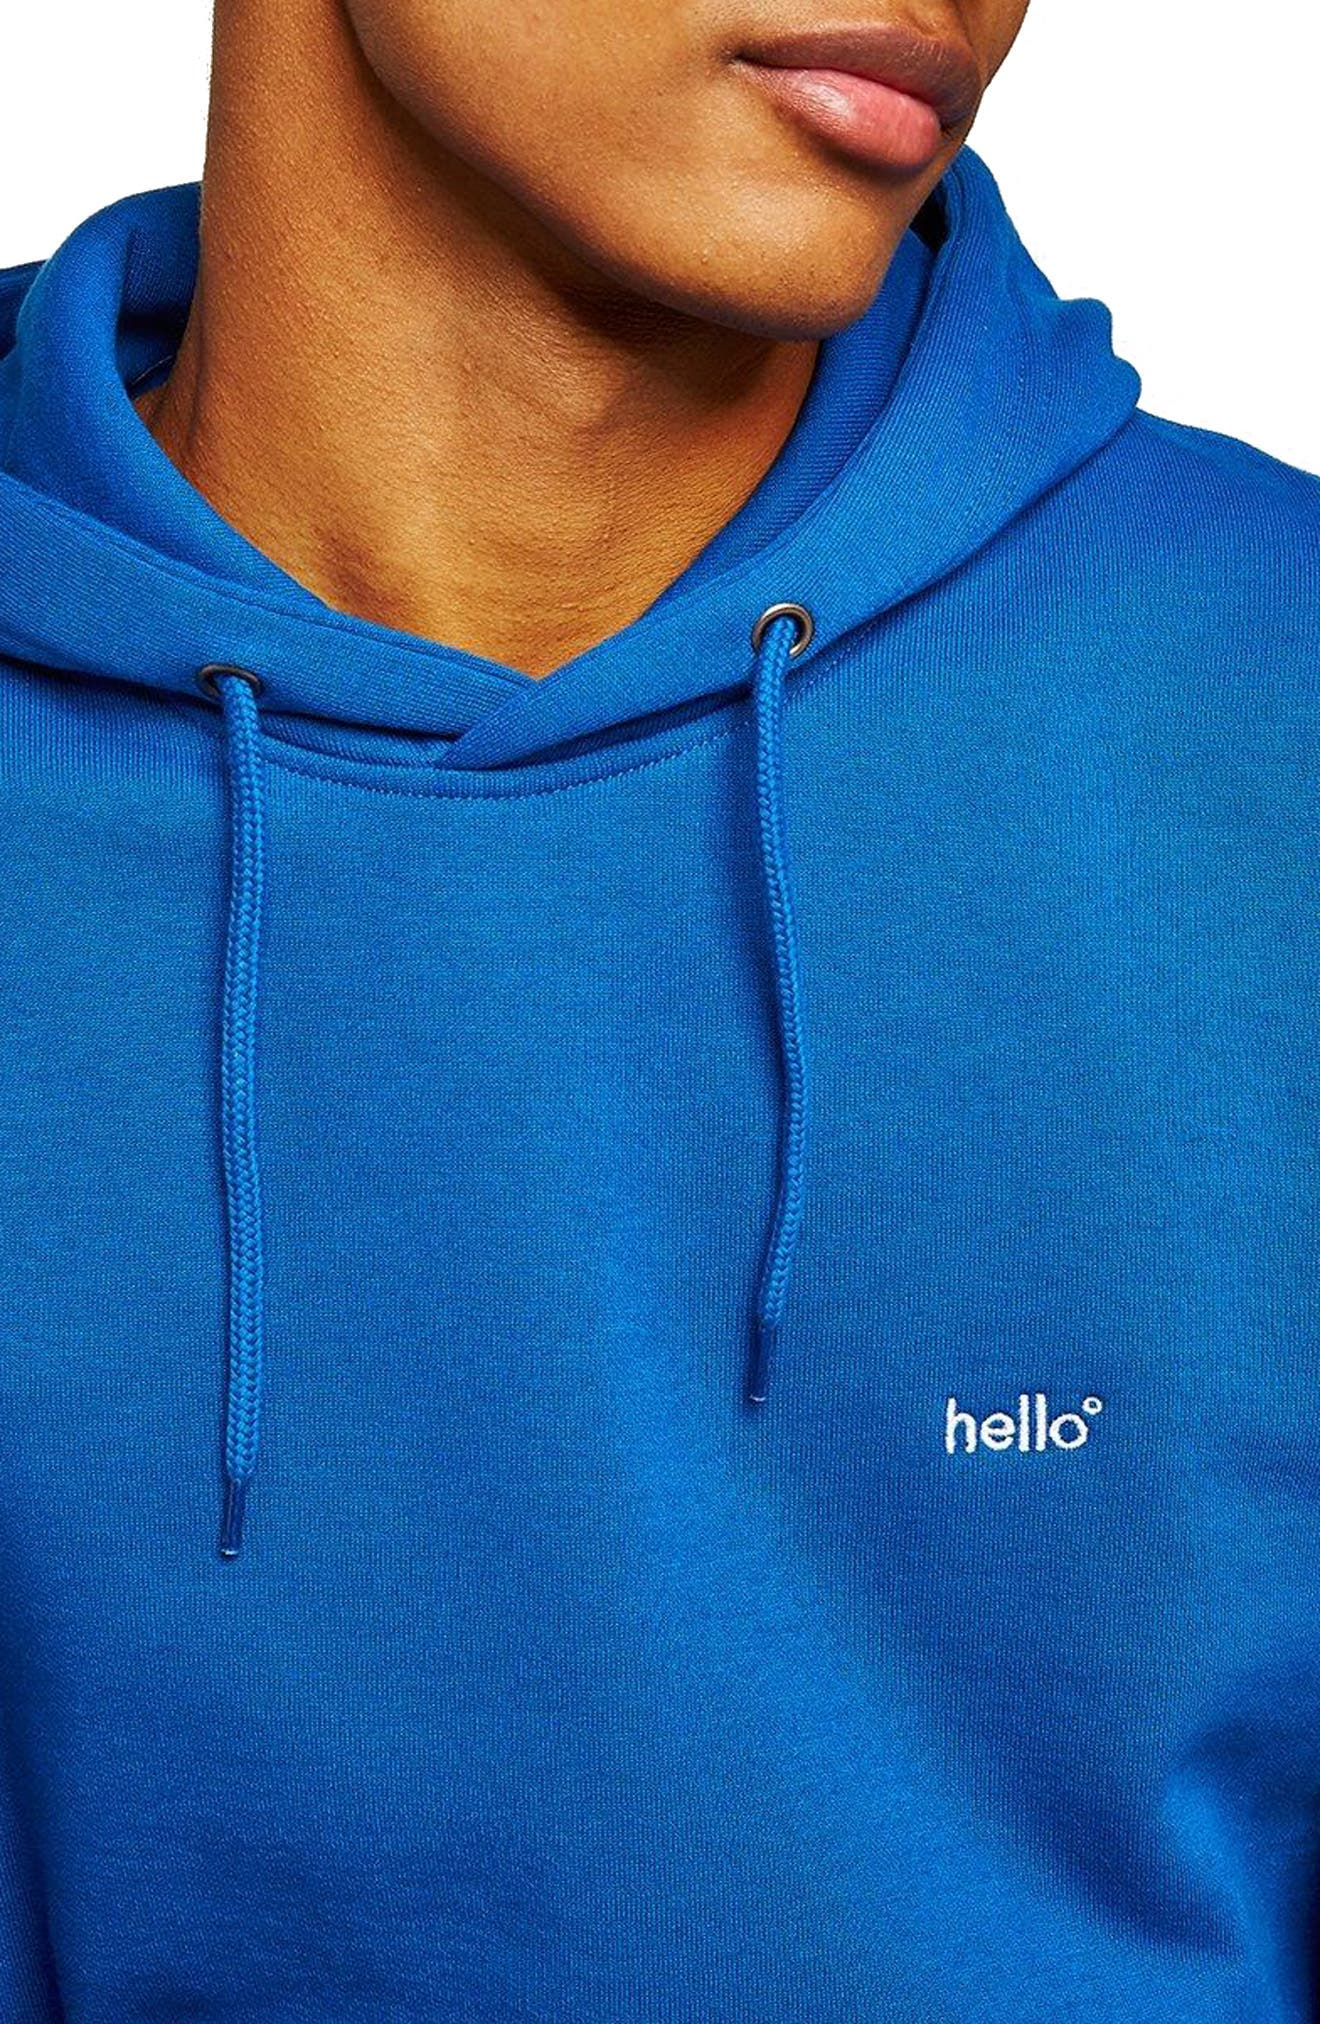 Classic Fit Tristan Hello Embroidered Hoodie,                             Alternate thumbnail 3, color,